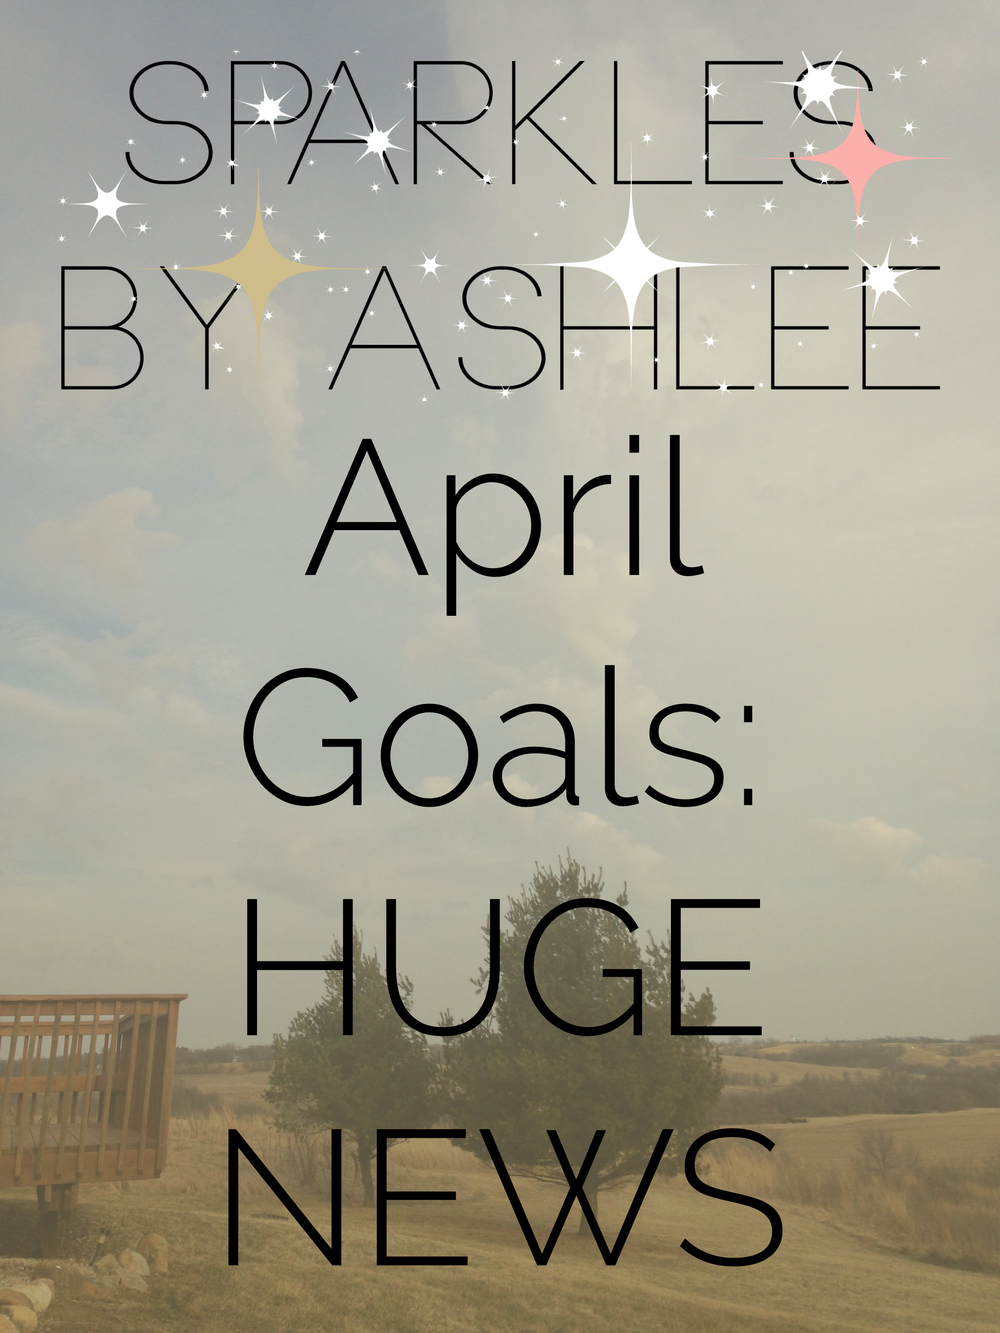 April-Goals-Huge-News-Sparkles-by-Ashlee.jpg